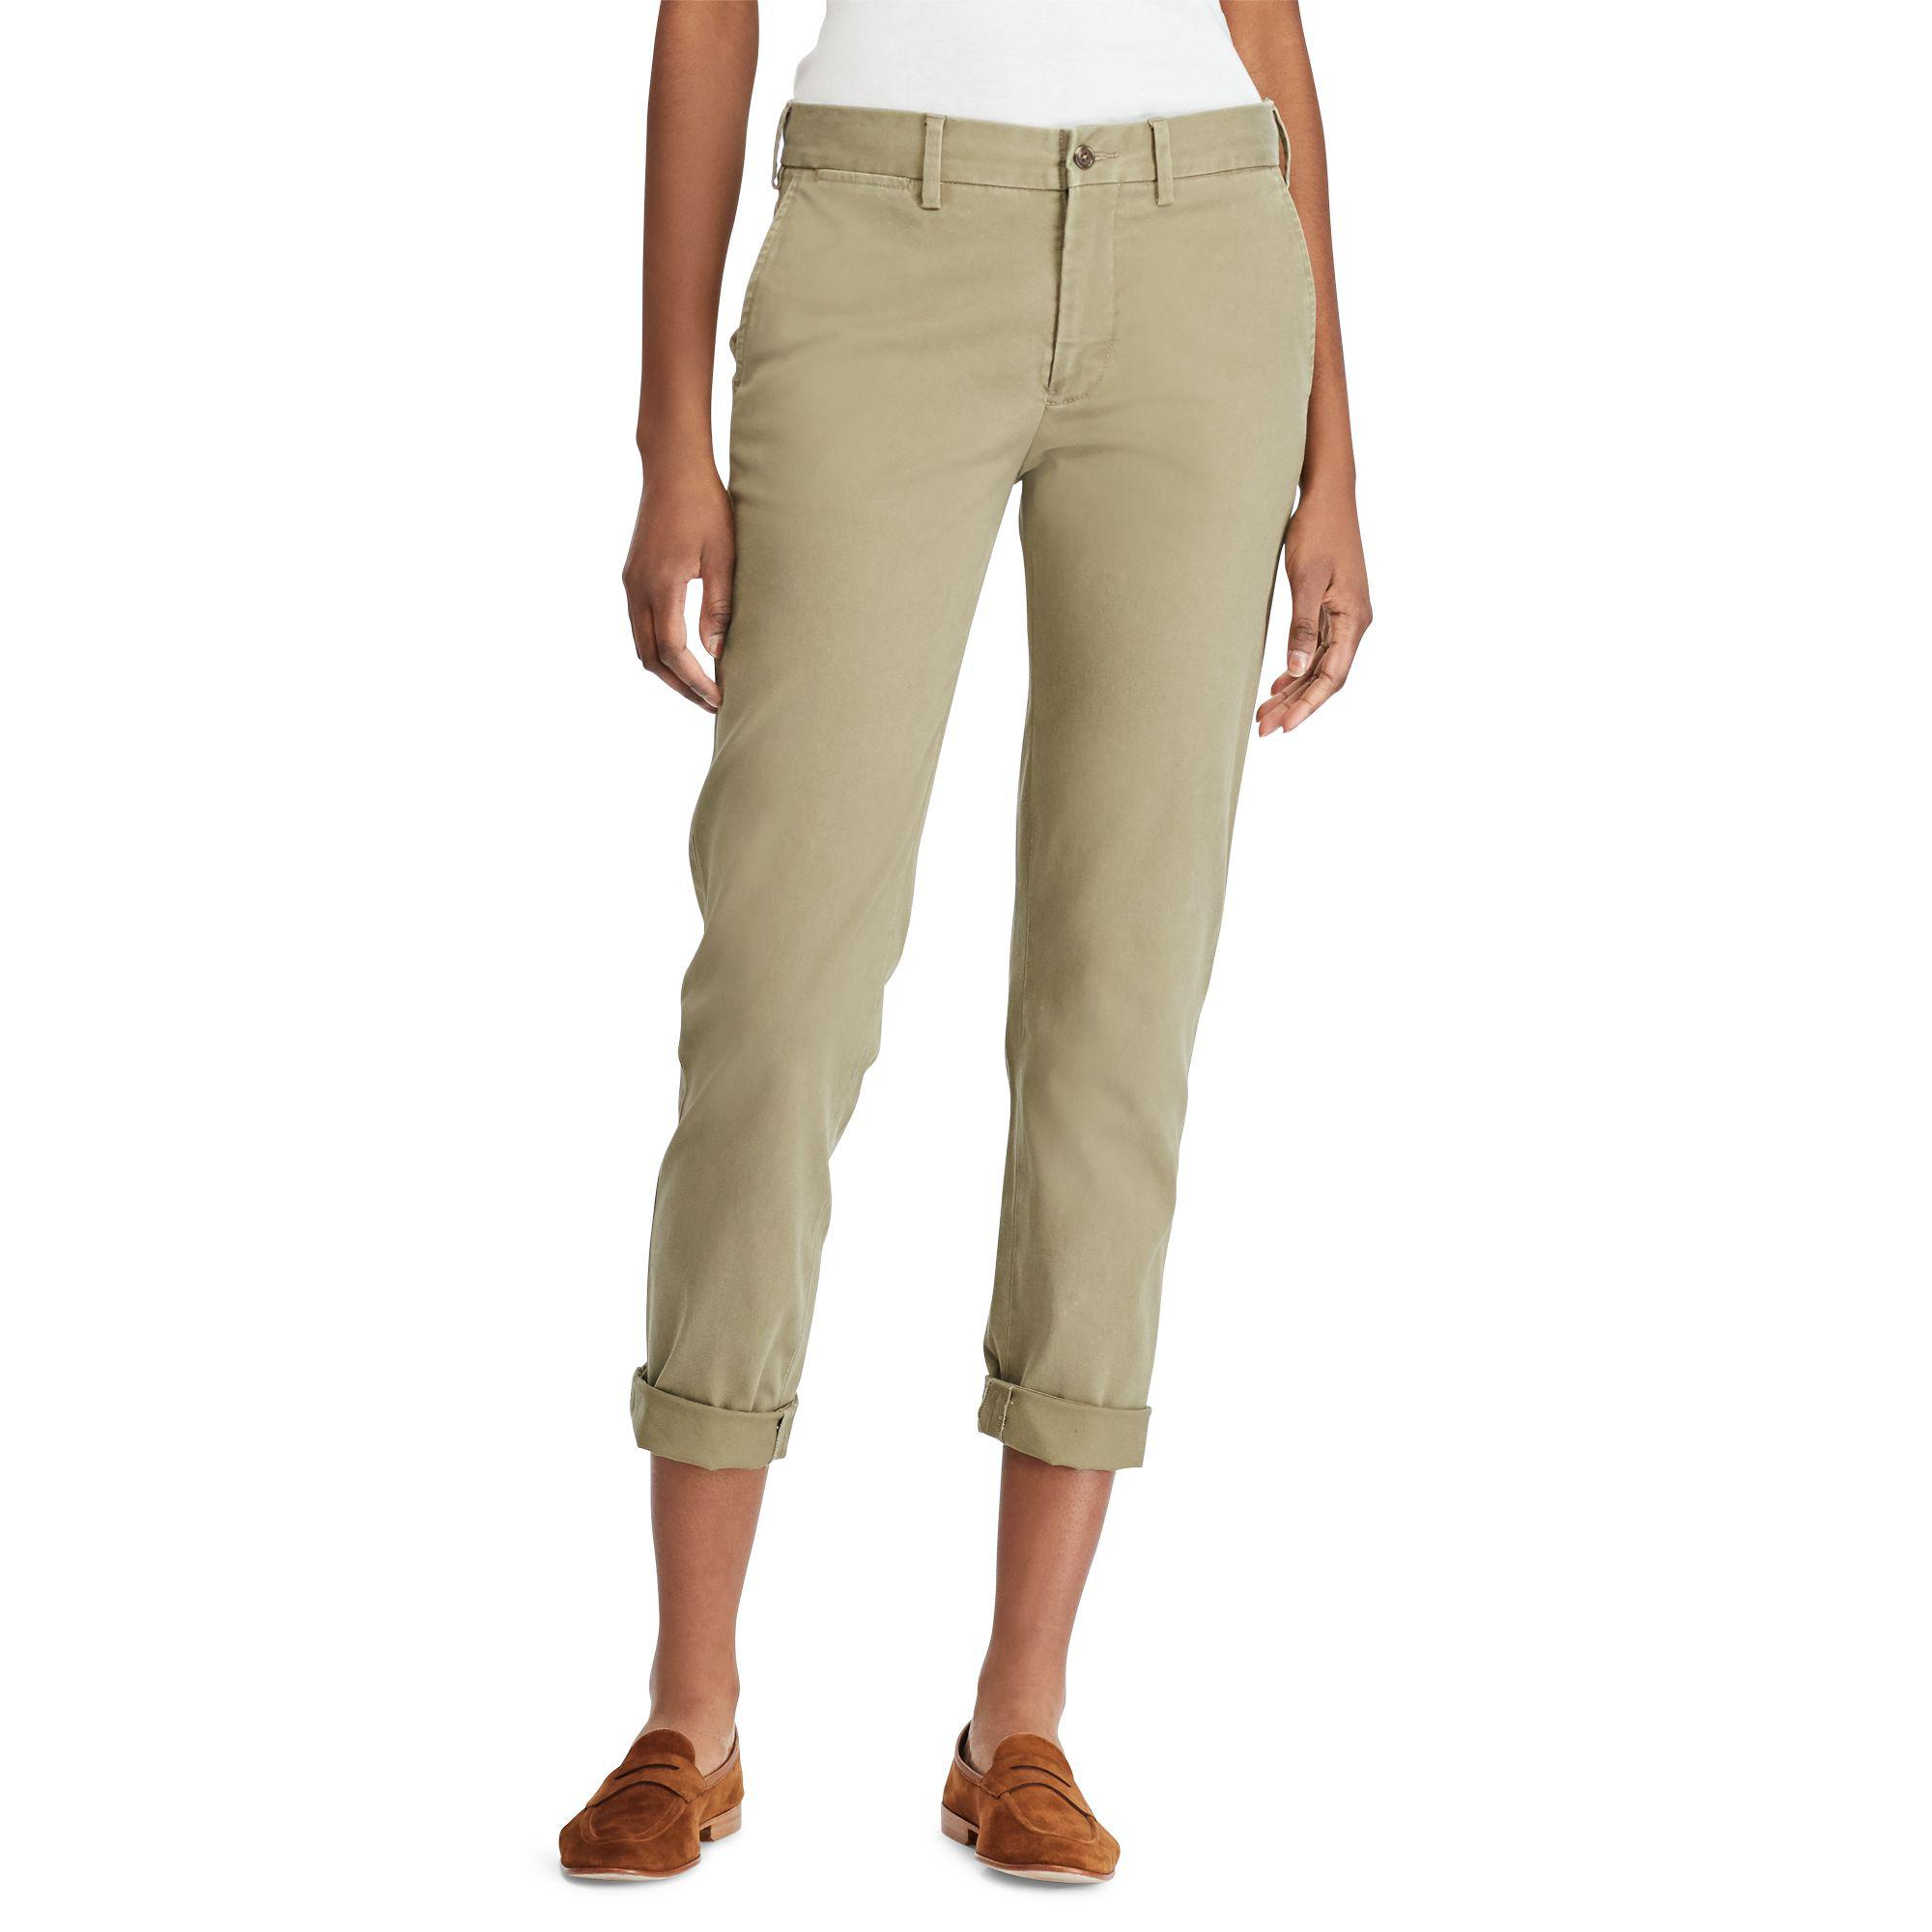 Polo Ralph Lauren Stretch Twill Cropped Pant - Lyst 1efb4ccb5a7